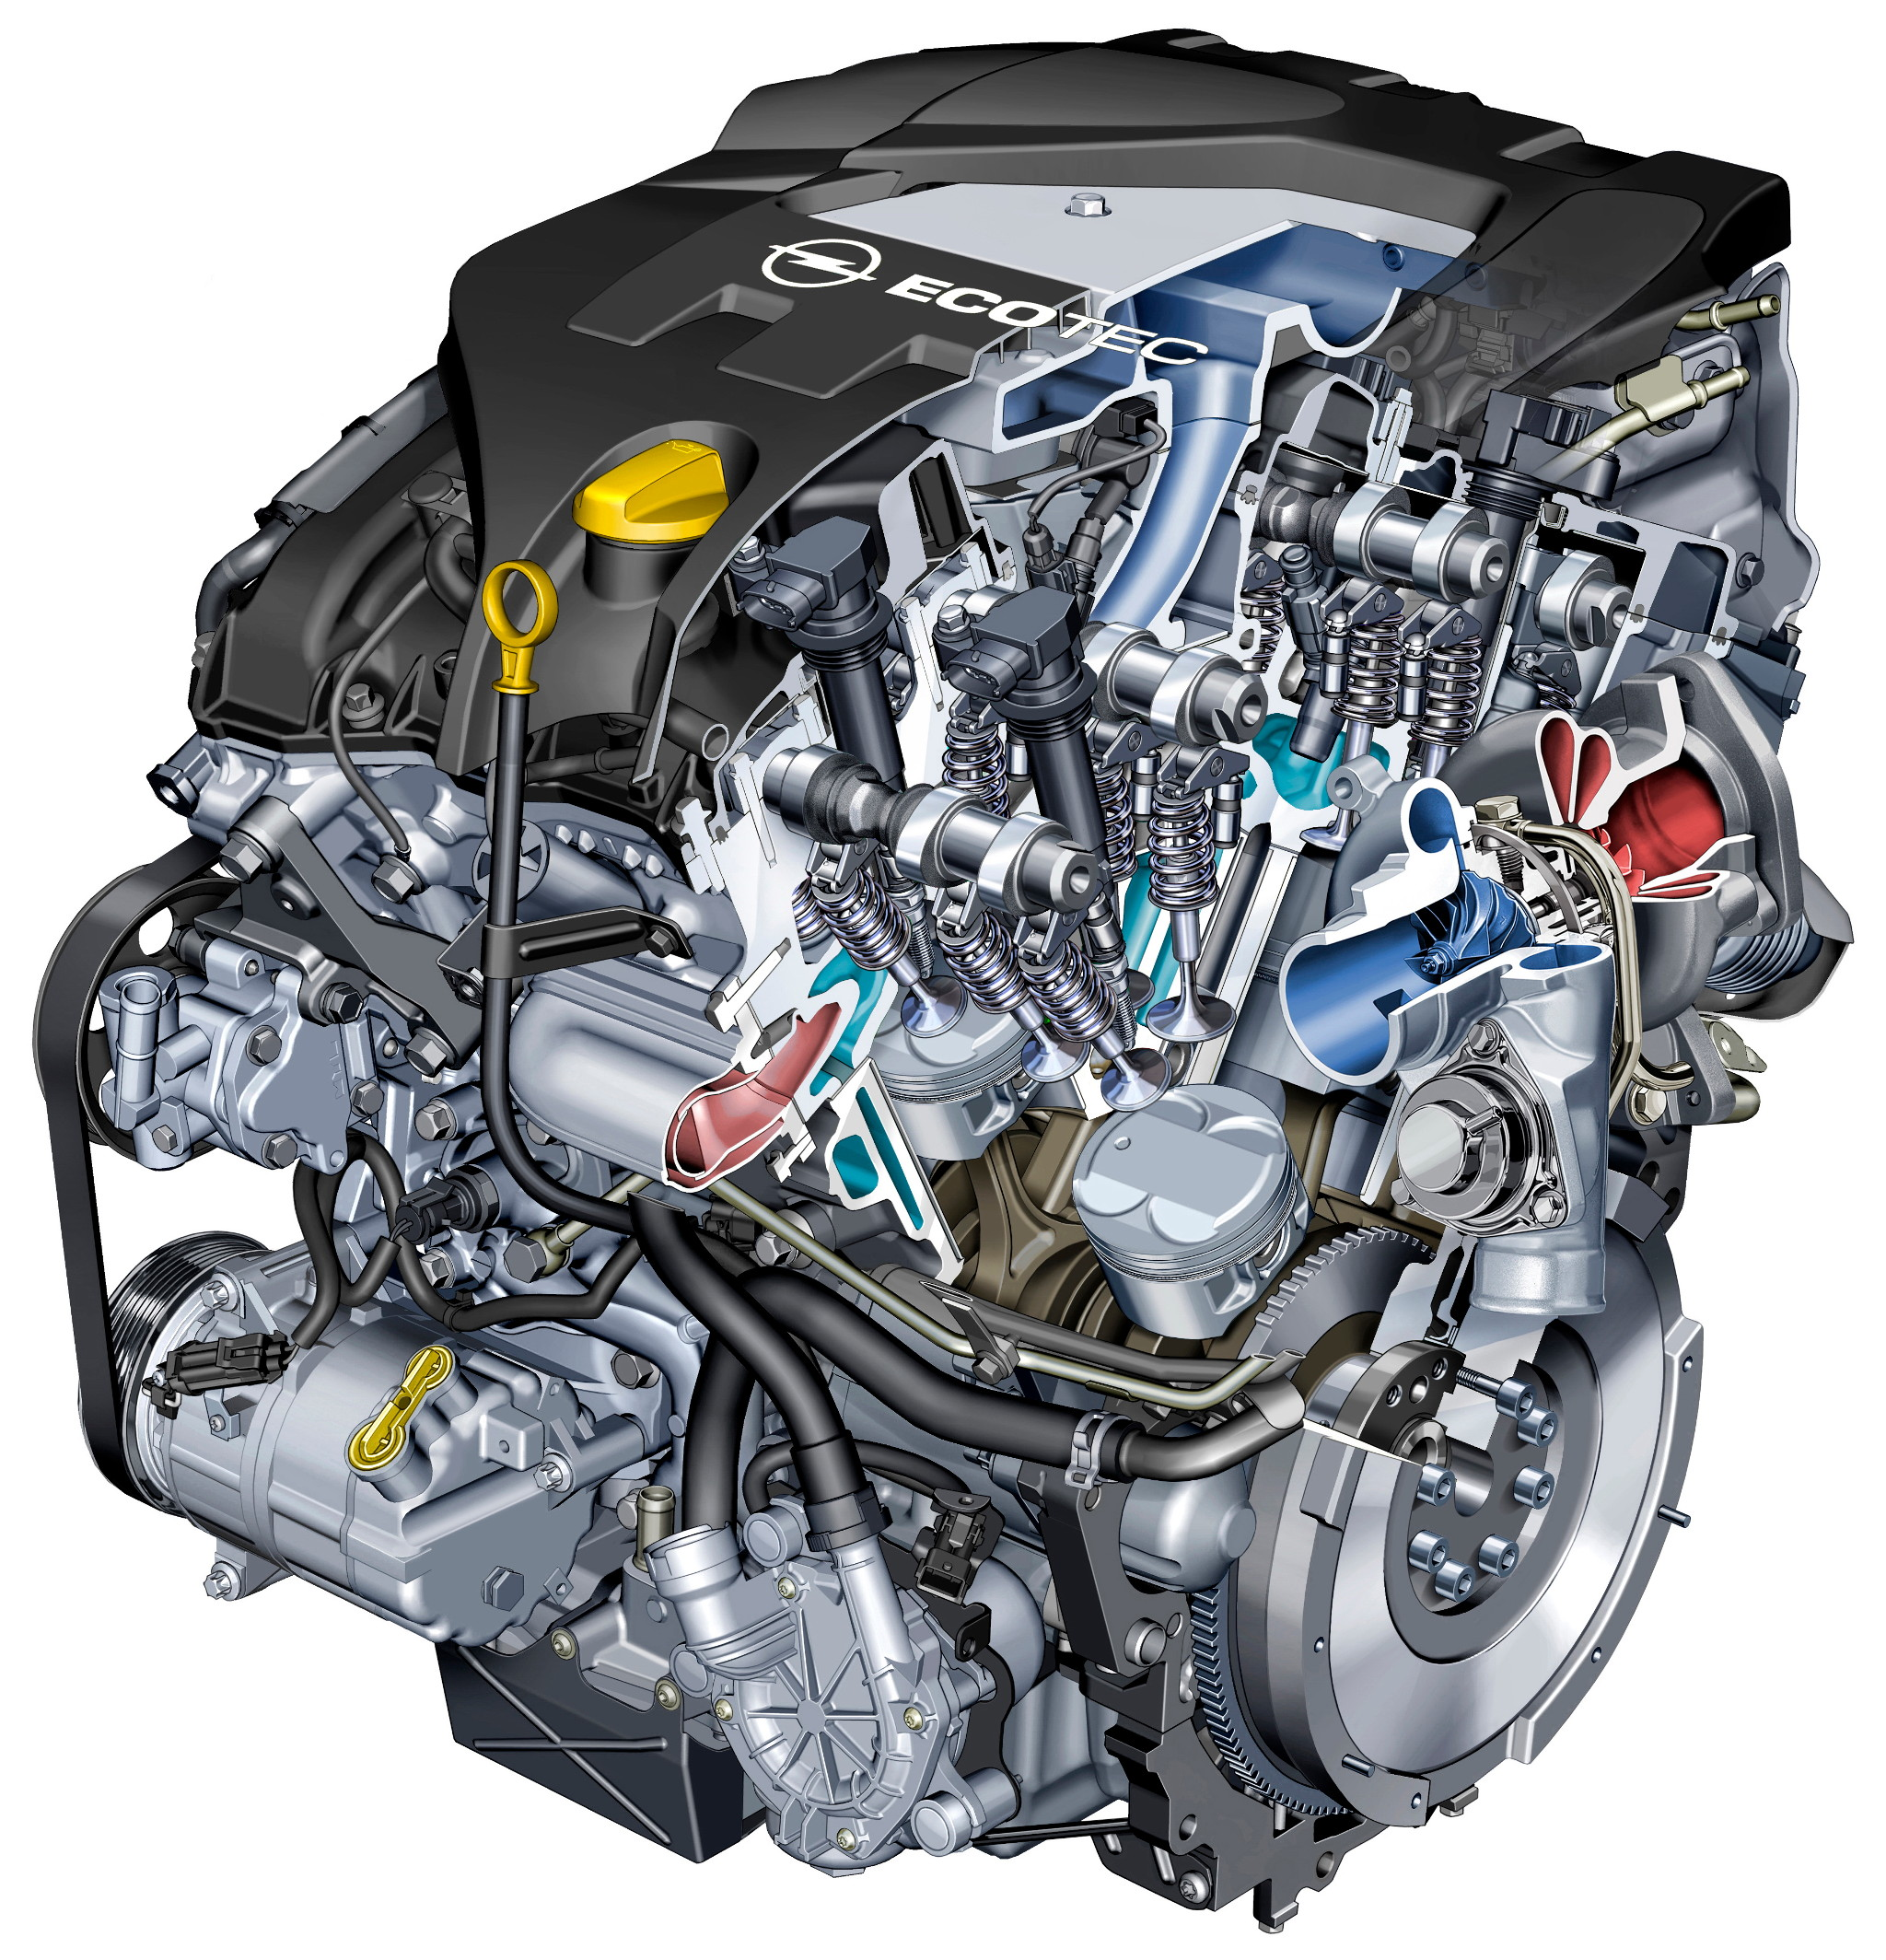 ECOTEC 2.8 V6 with twin-scroll turbocharger